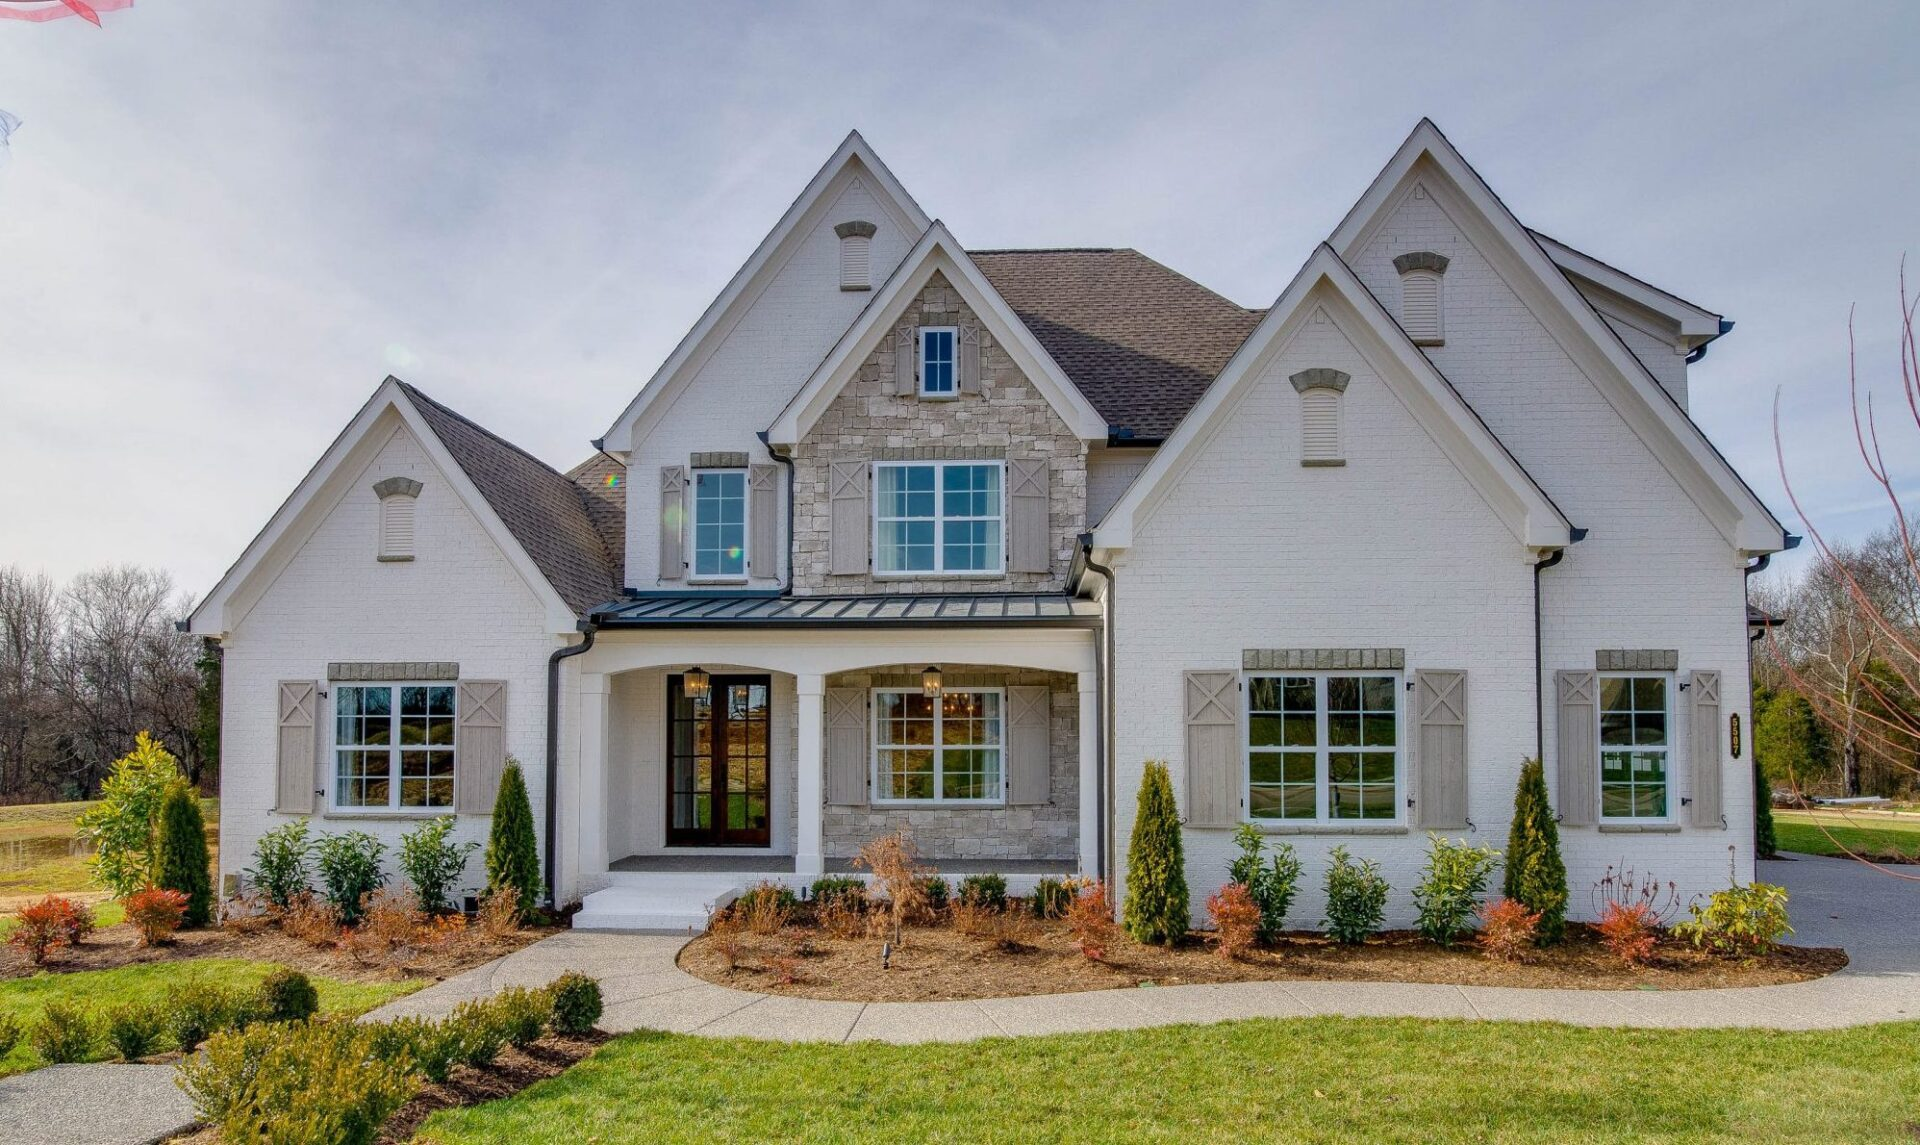 Nottingham A - High-end home builders for luxury homes - luxury home builder | Nashville, TN